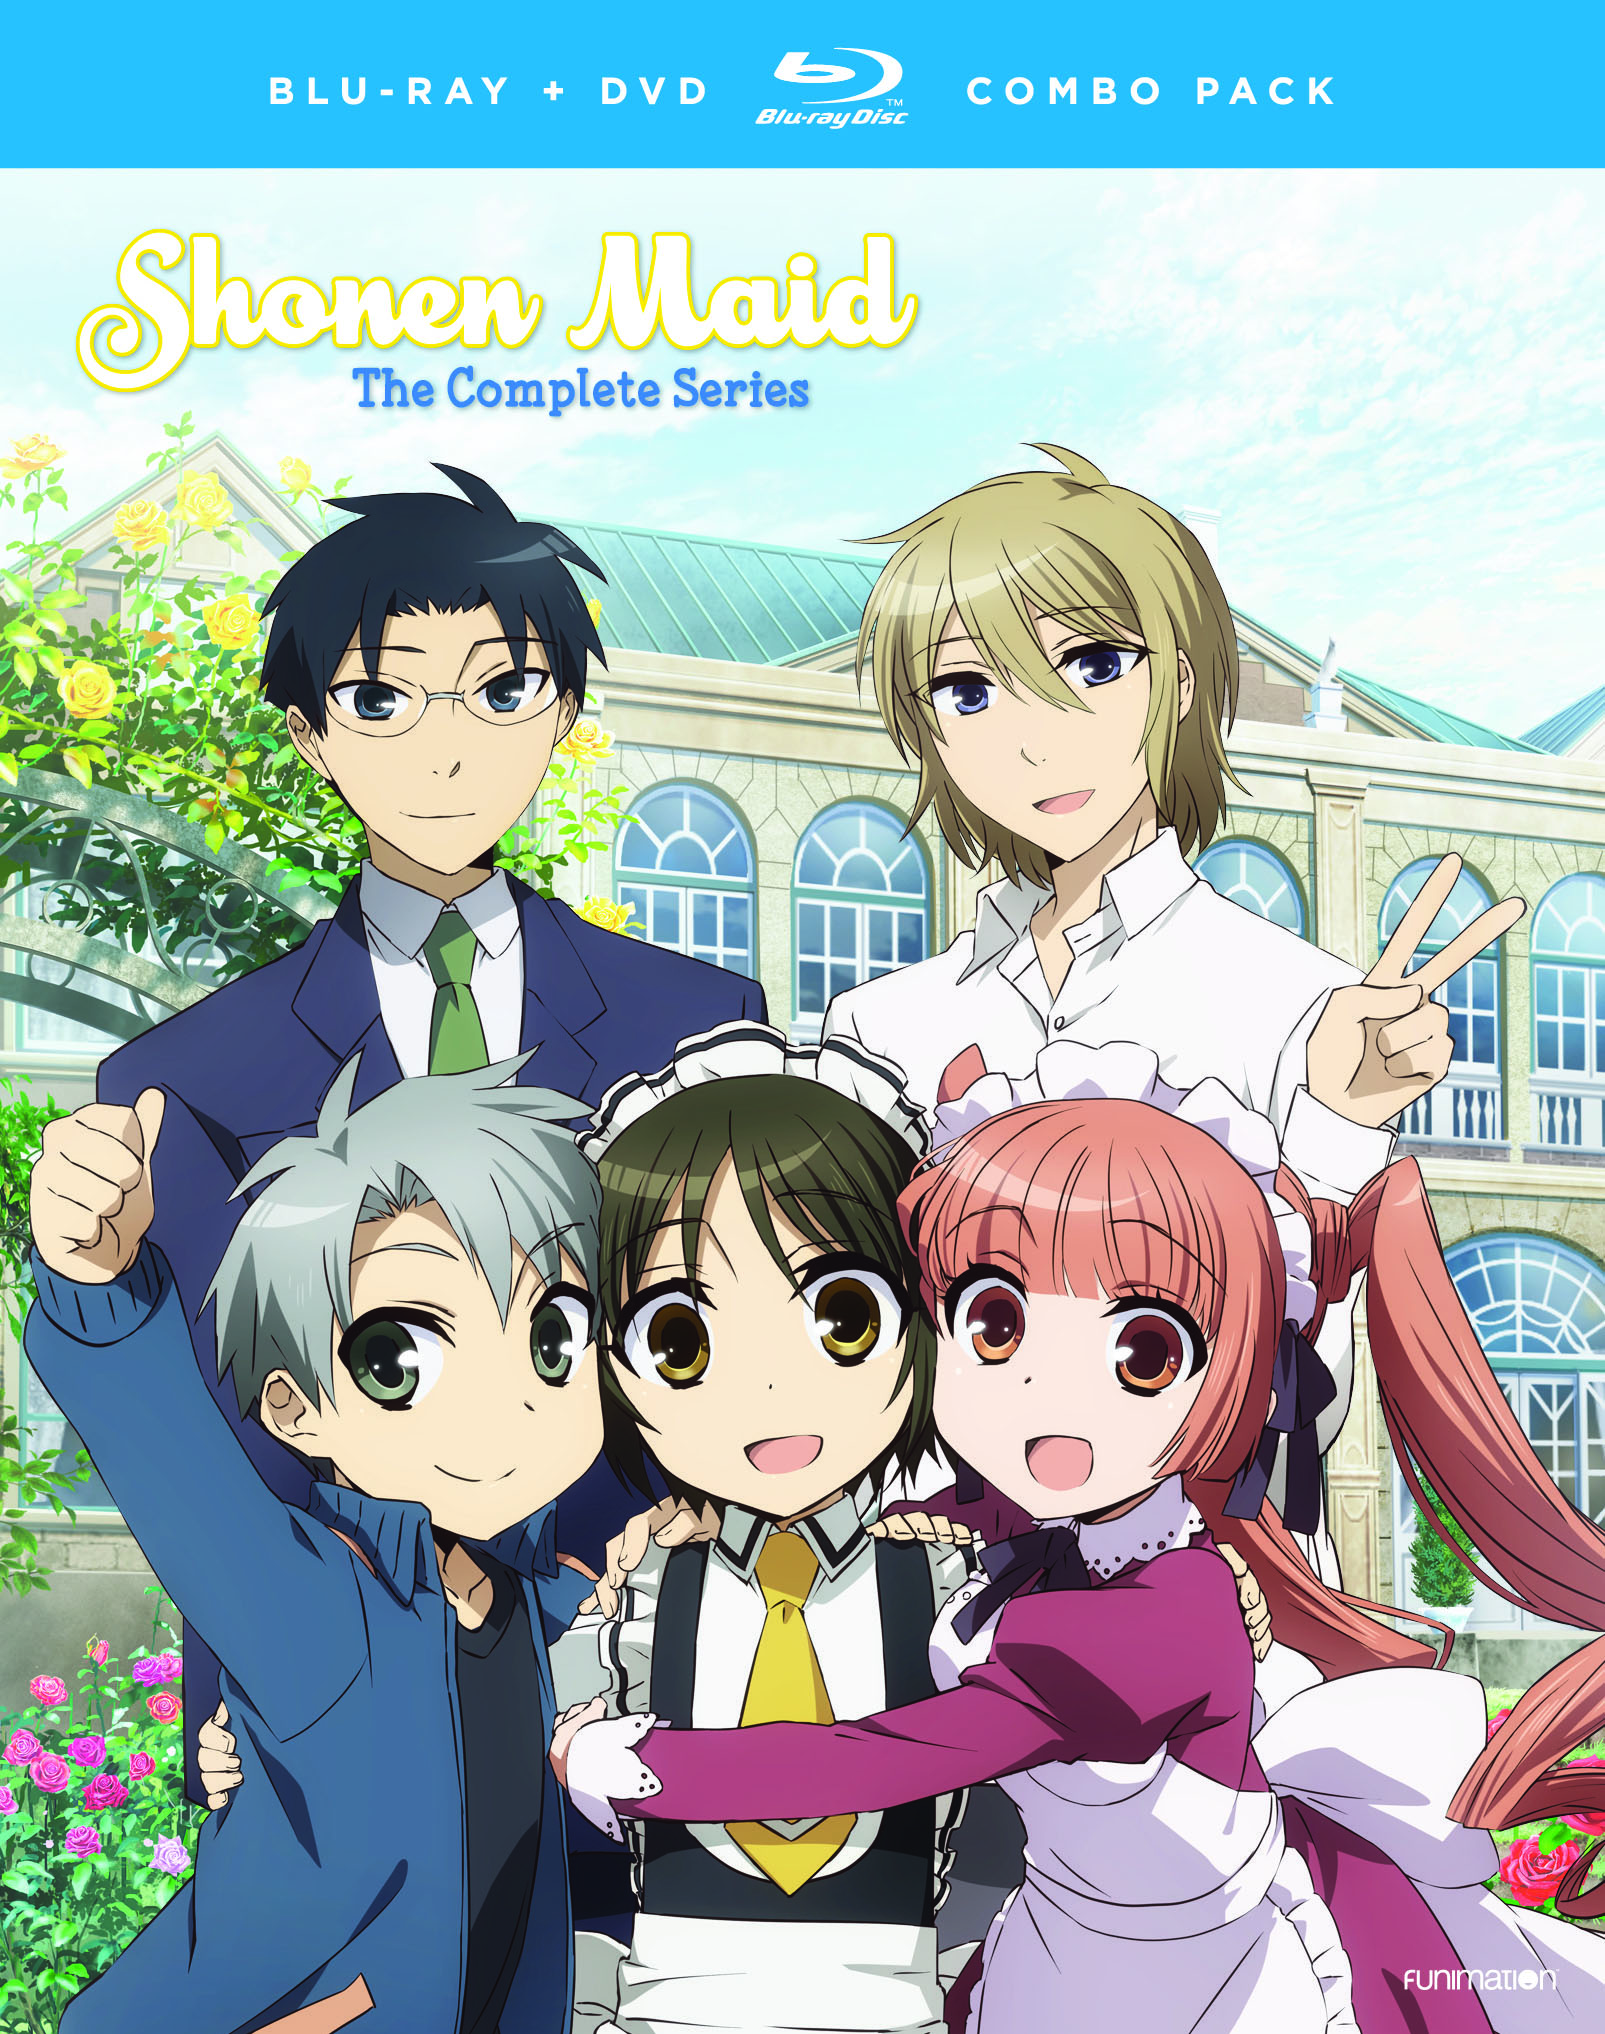 Shonen Maid Blu-ray/DVD 704400017339